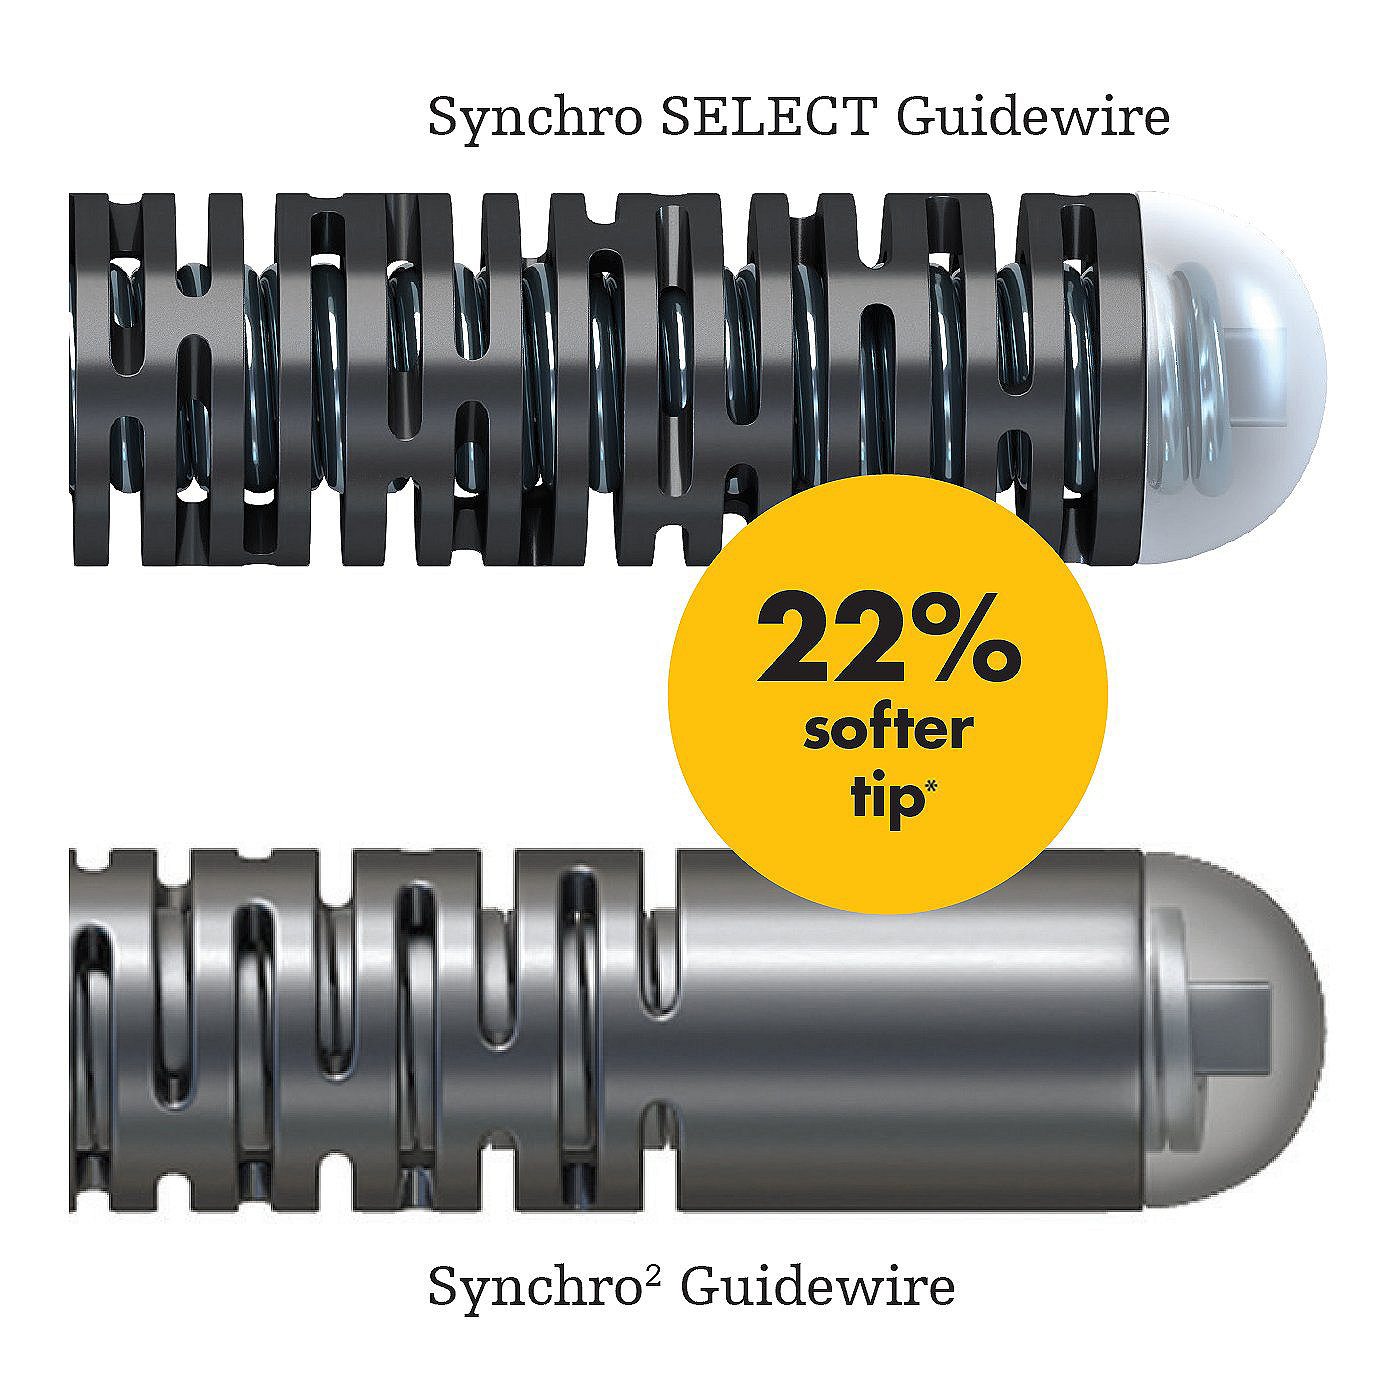 Synchro SELECT Guidewire (22% softer tip) Synchro2 Guidewire